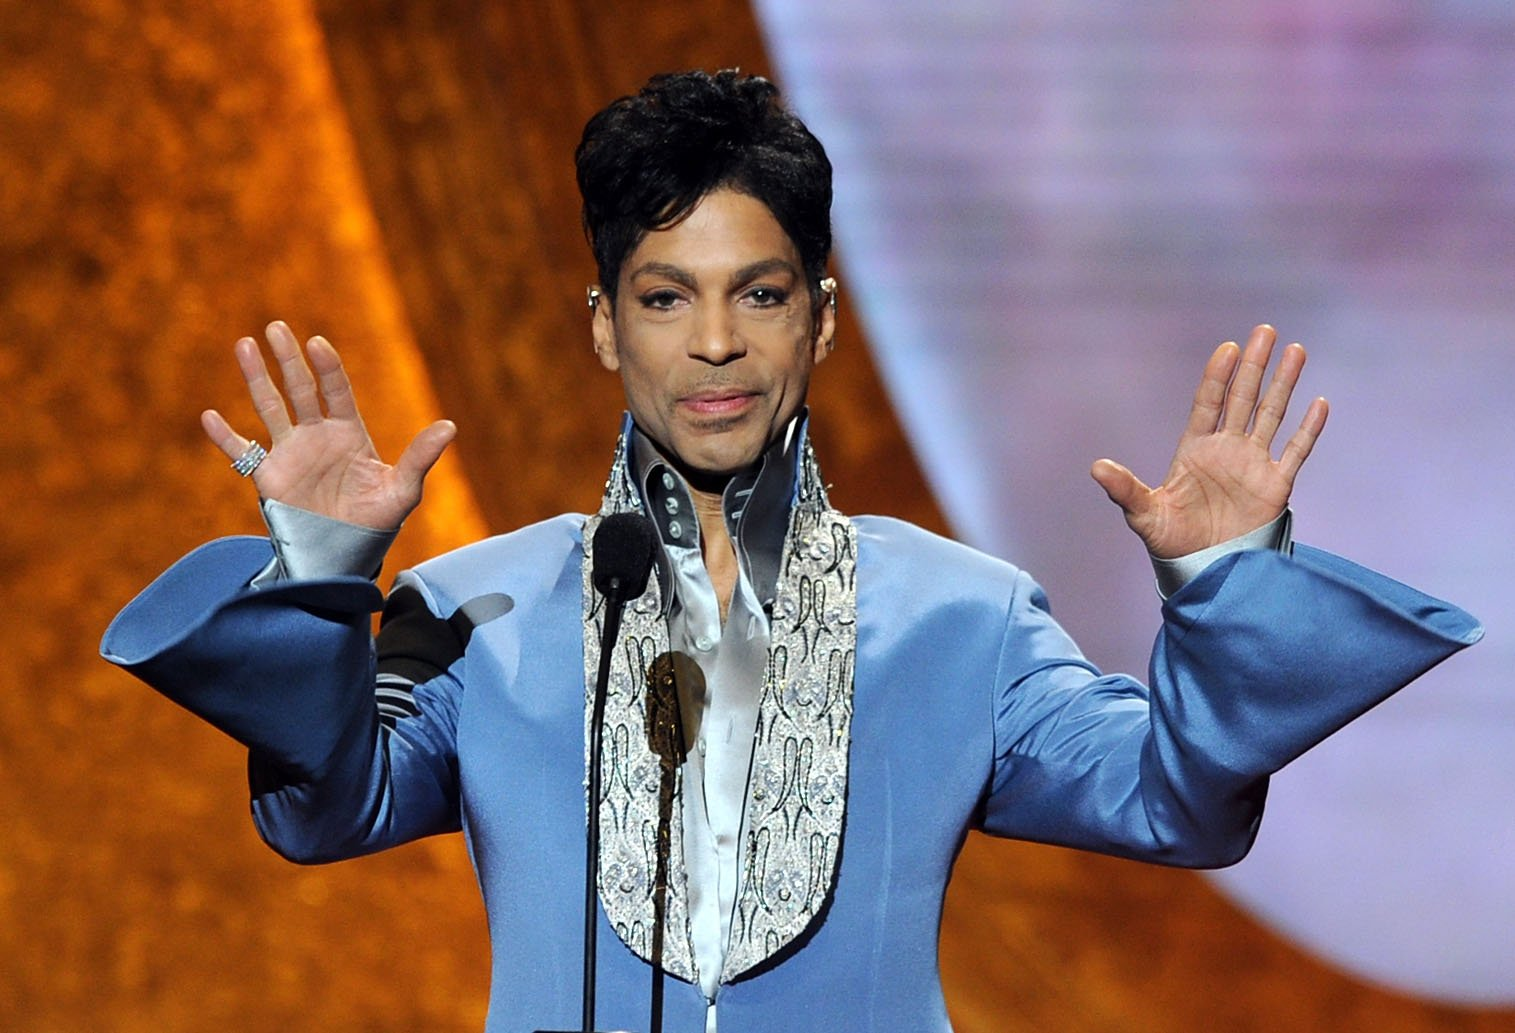 LOS ANGELES, CA - MARCH 04: Prince speaks onstage at the 42nd NAACP Image Awards held at The Shrine Auditorium on March 4, 2011 in Los Angeles, California. (Photo by Kevin Winter/Getty Images for NAACP Image Awards)